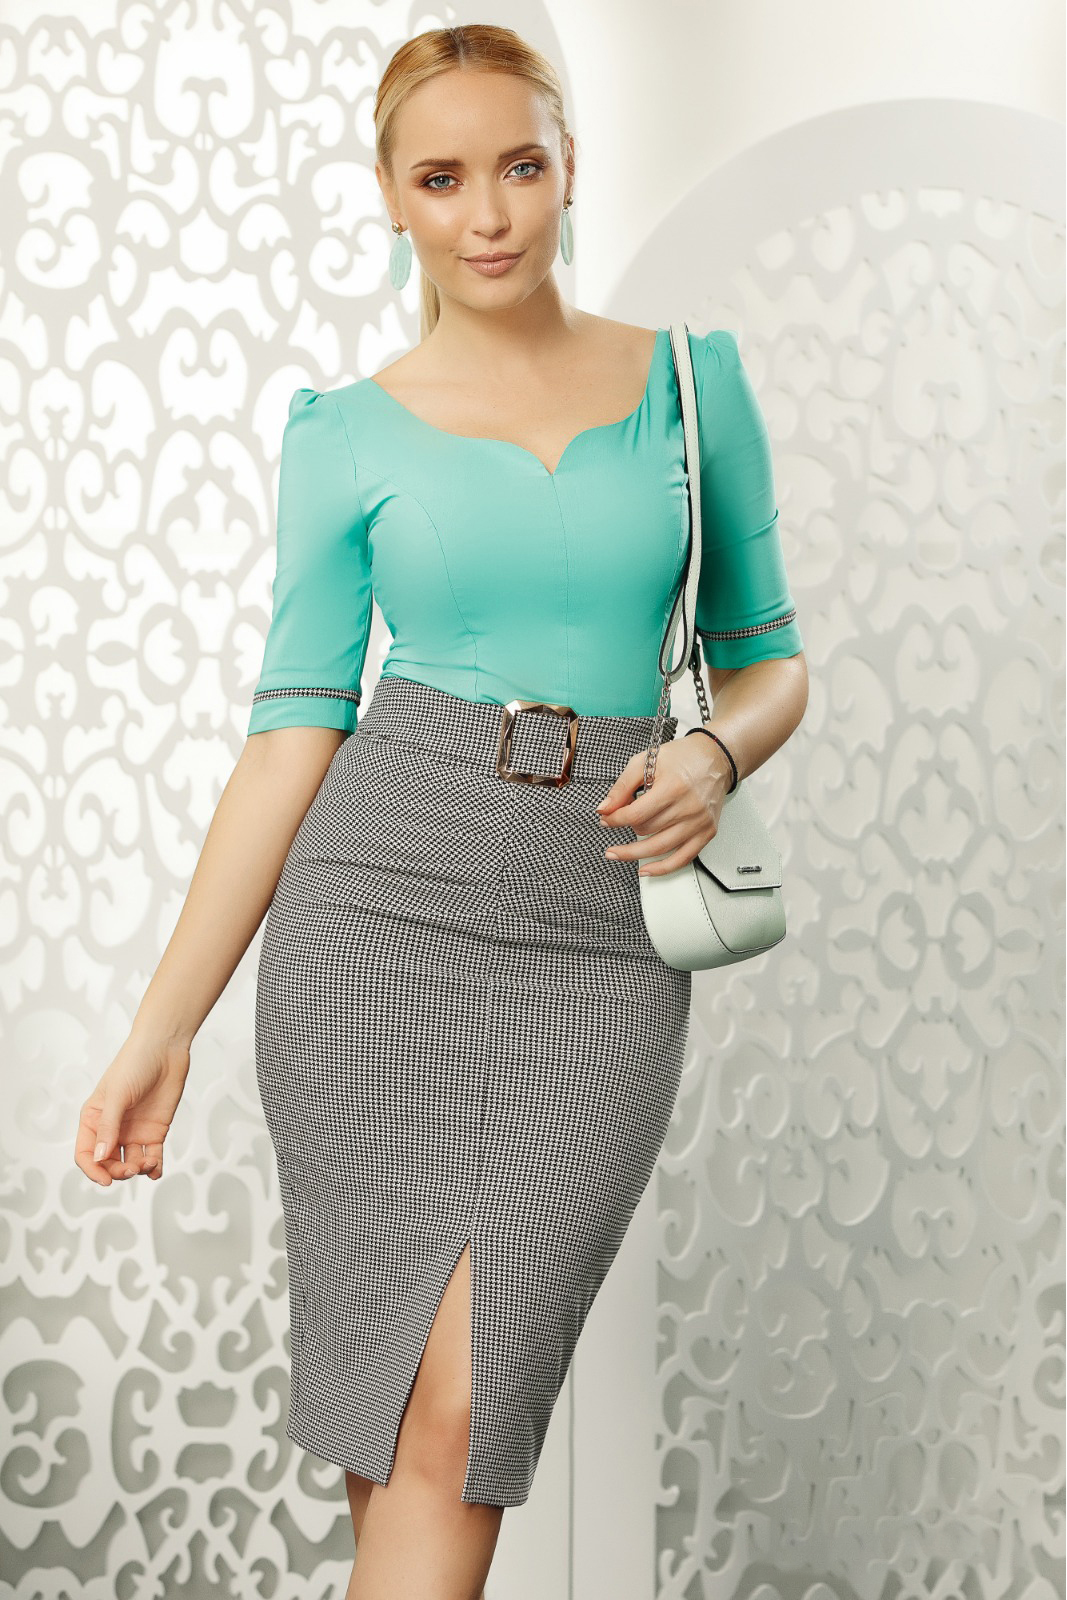 Fofy grey skirt midi high waisted pencil office accessorized with tied waistband